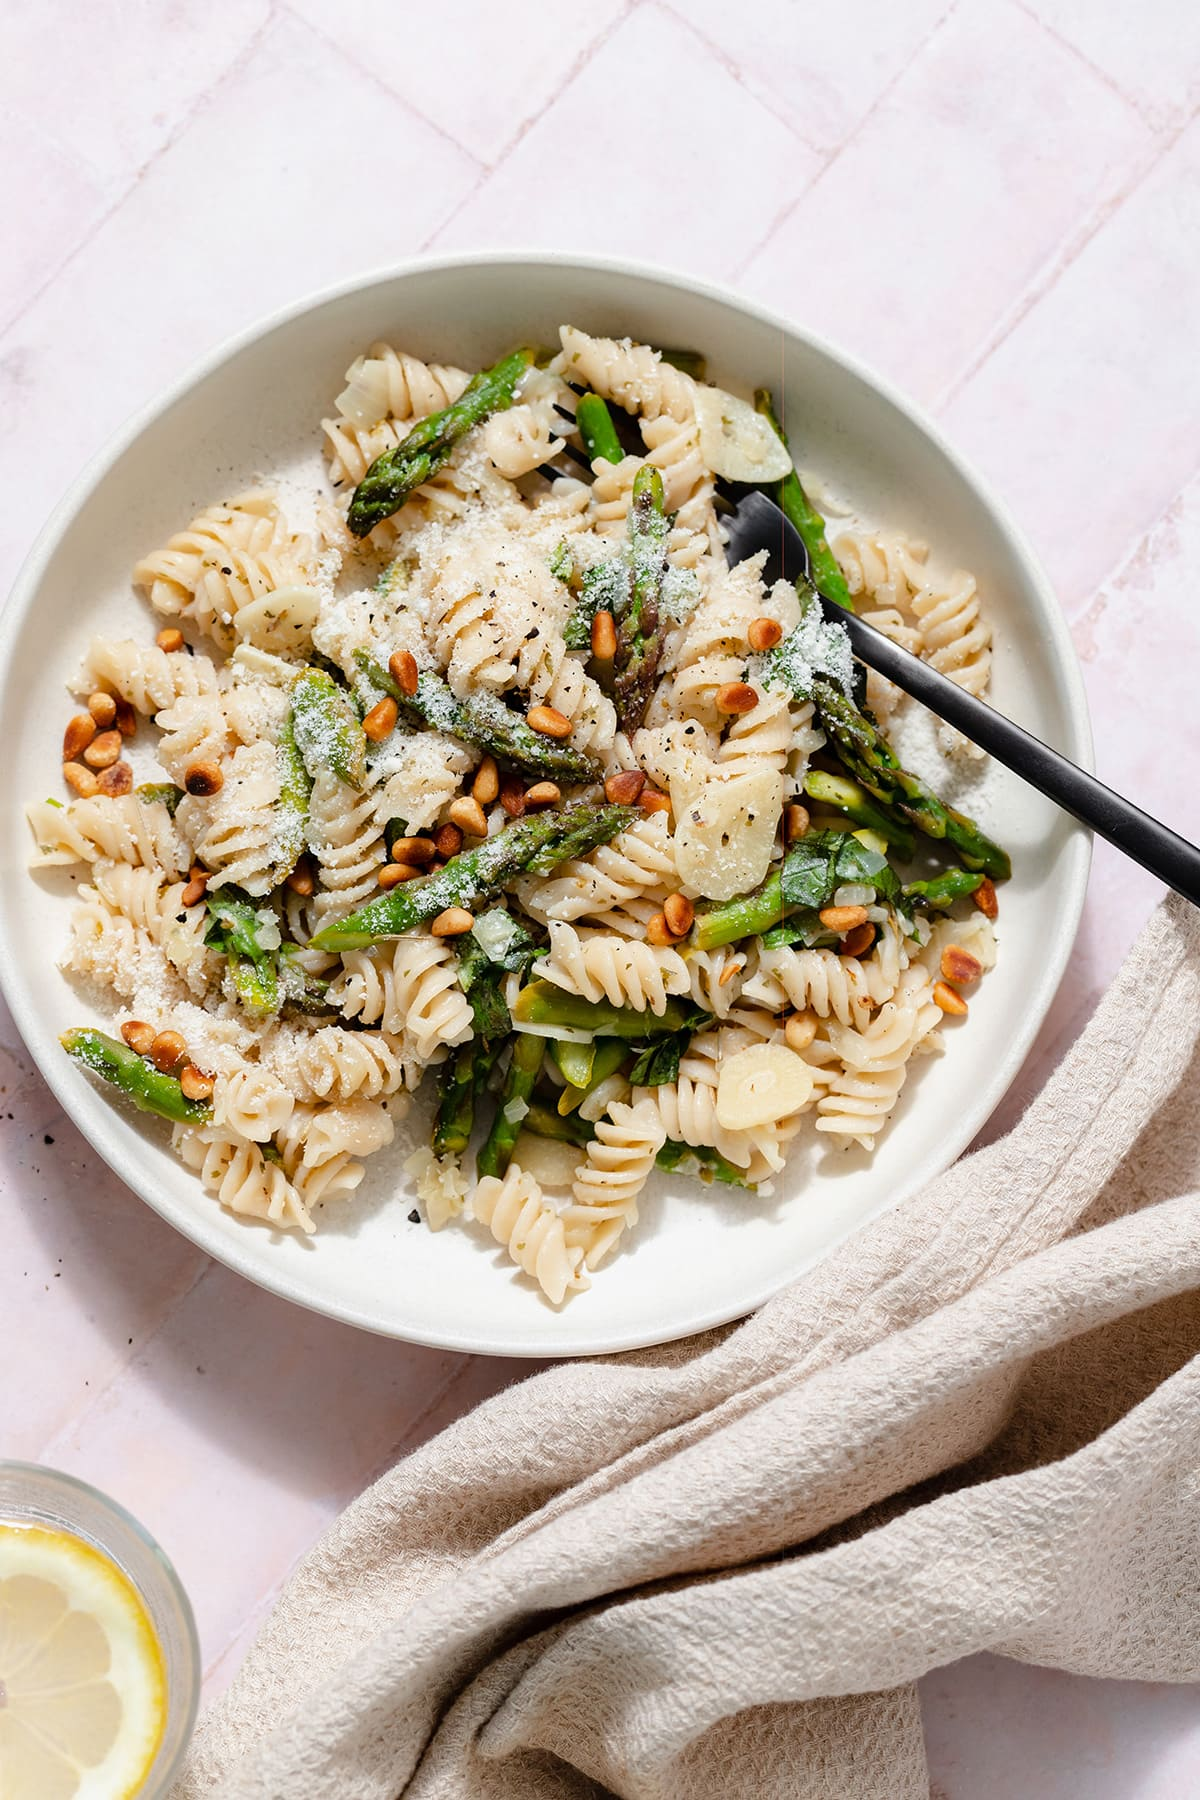 Asparagus pasta with toasted pine nuts and fresh basil on a light green low bowl with a black fork in the bowl. On a light pink tile background.